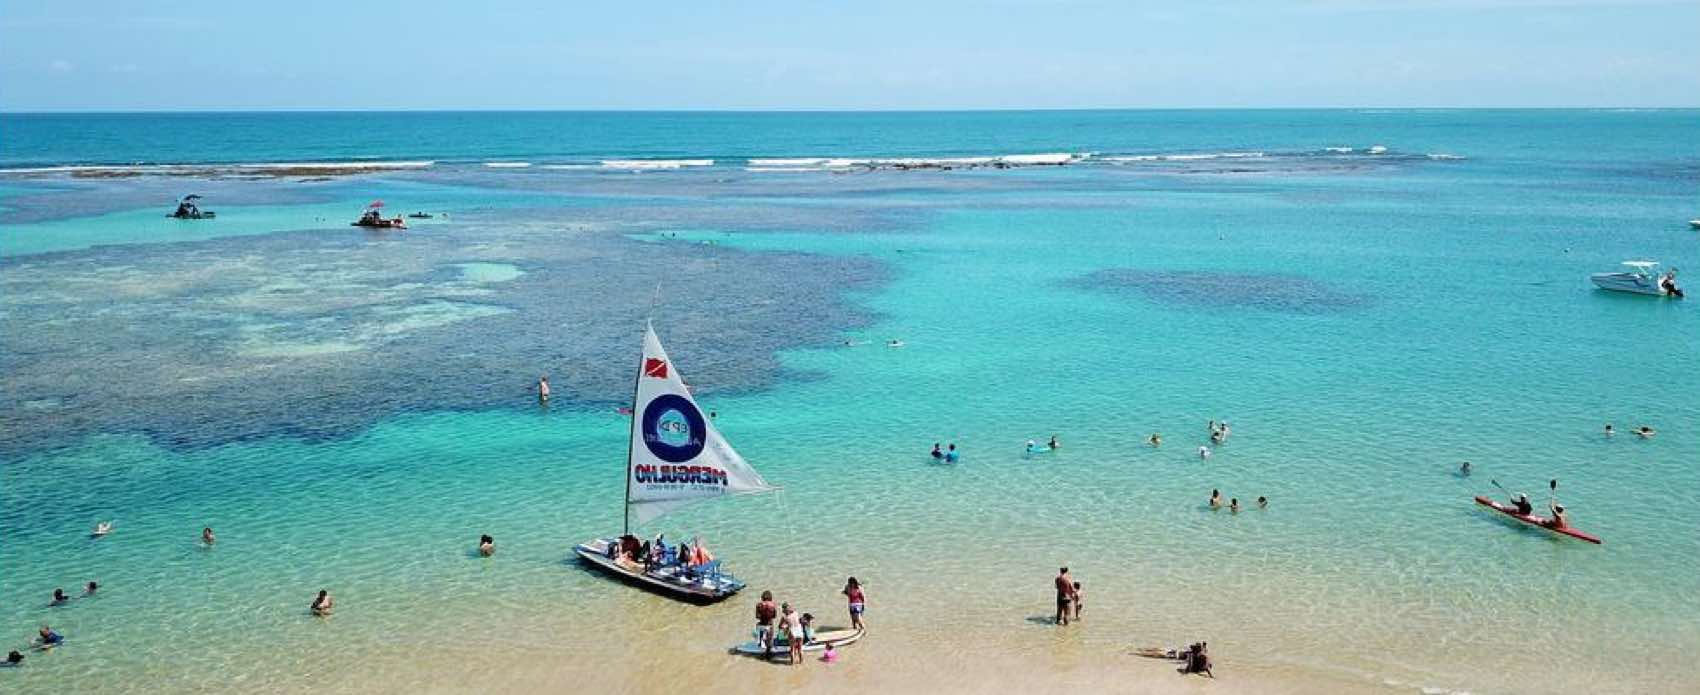 One of many beaches in Galinhas